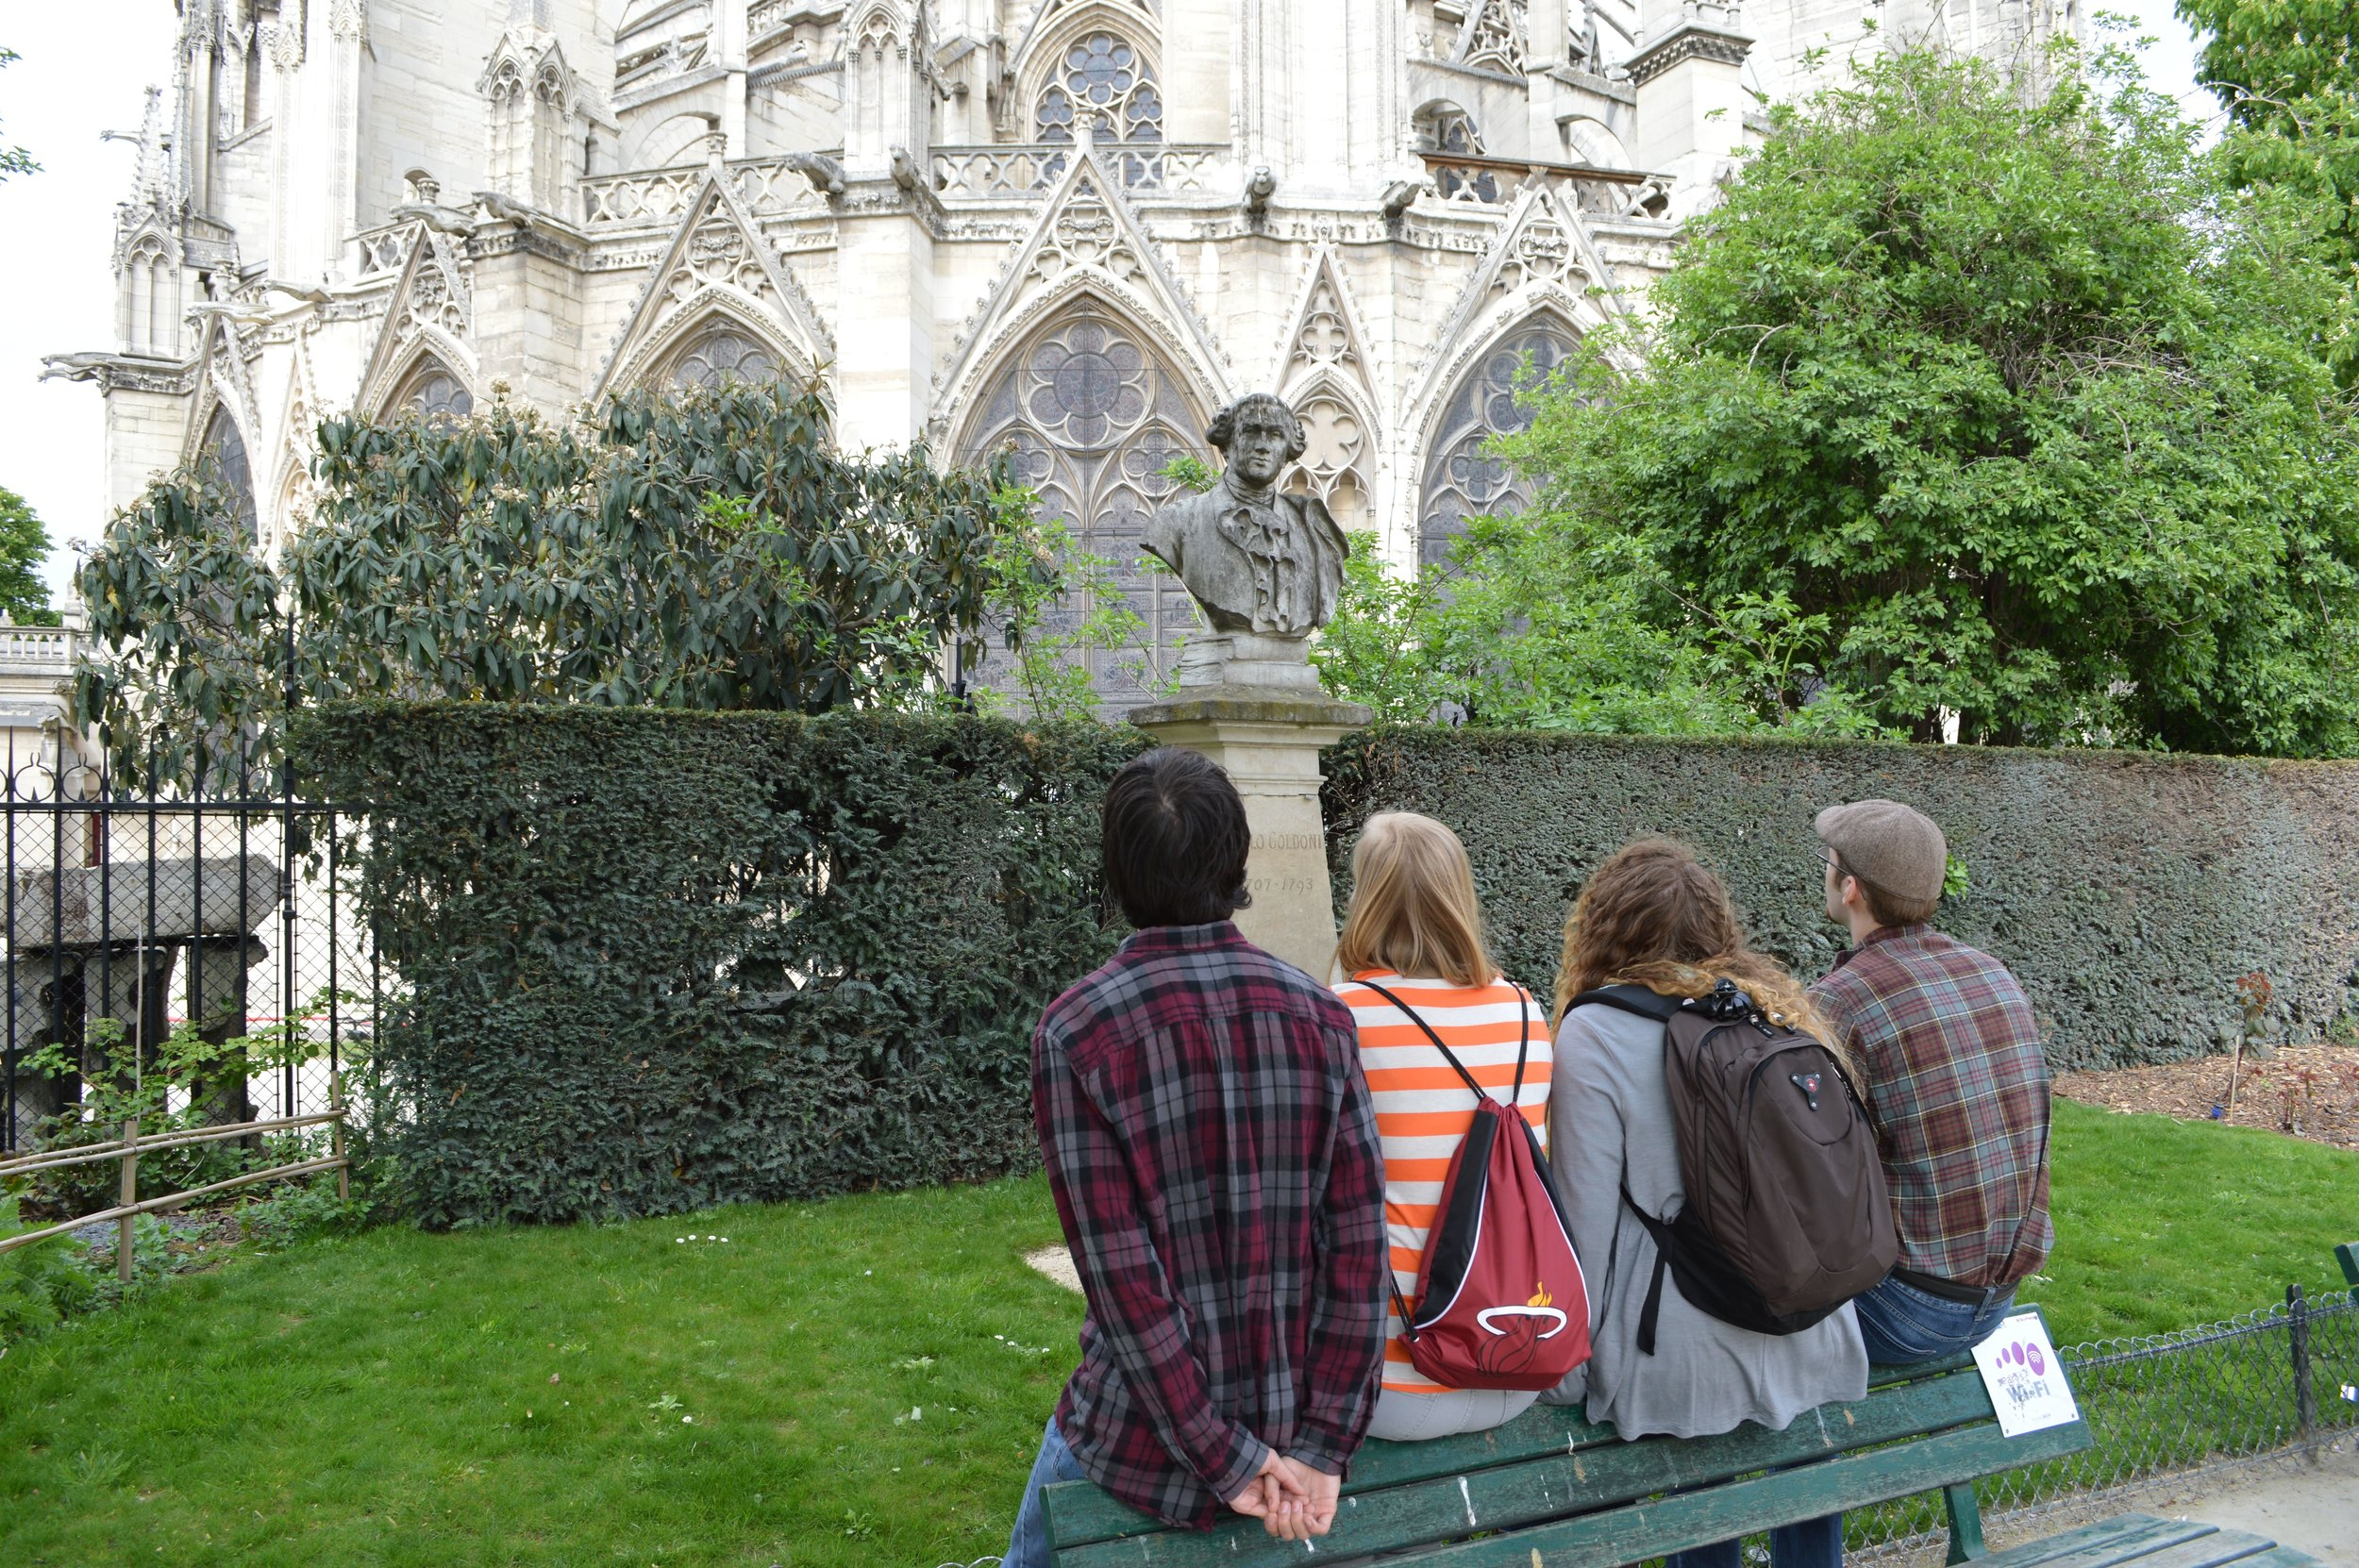 Students at east end of Notre Dame, Paris